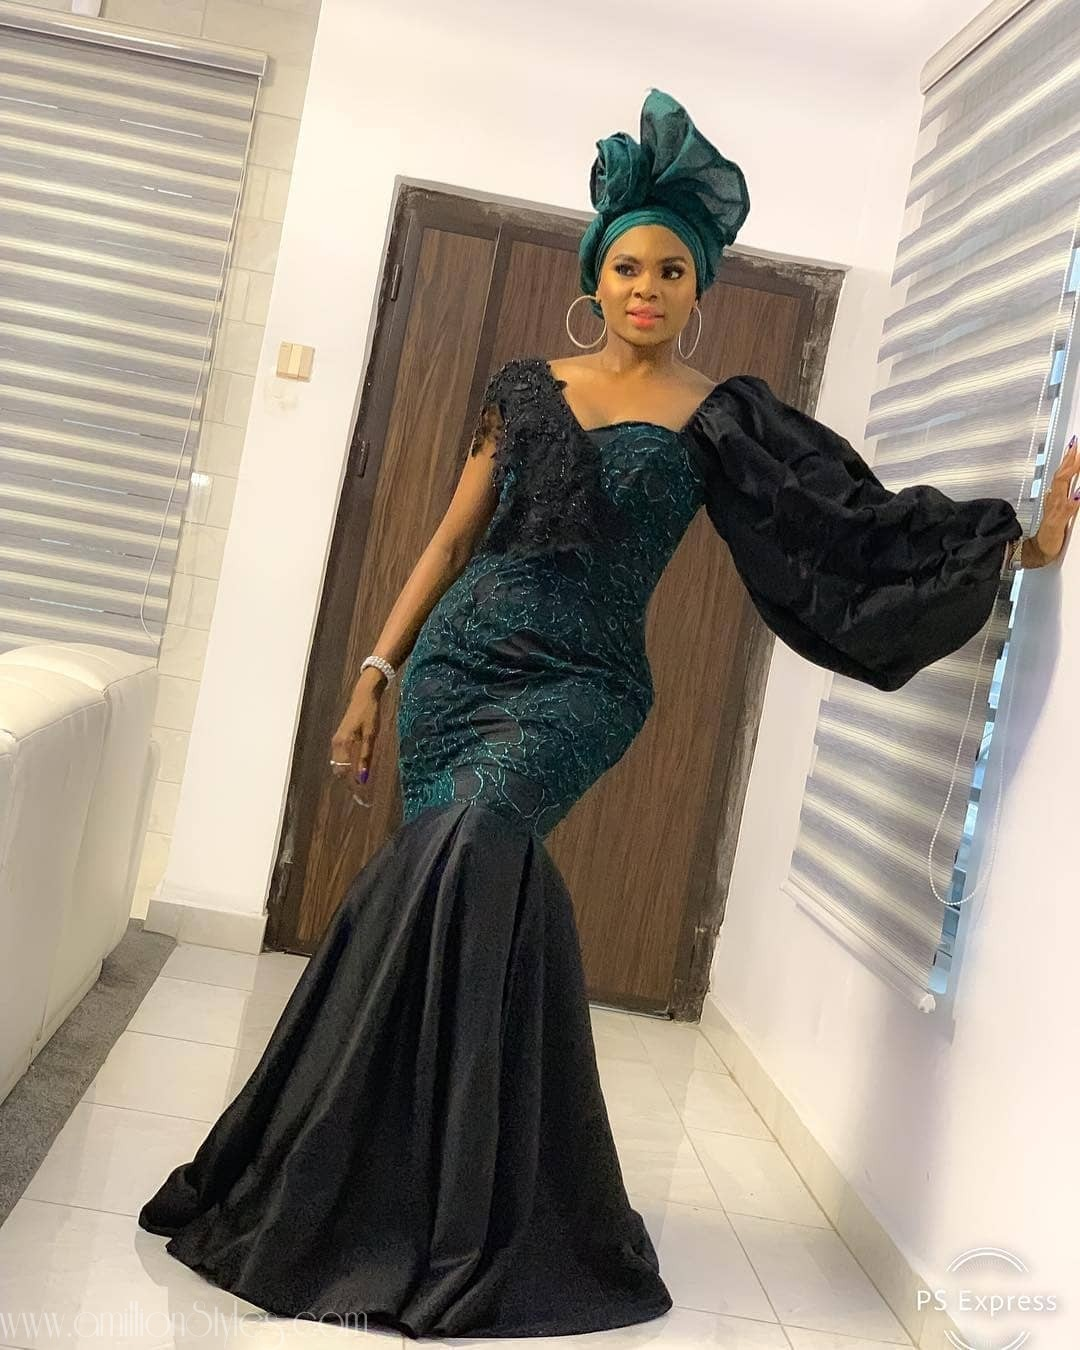 Latest Lace Asoebi Styles Volume 9 beauties! check out these dazzling aso ebi styles would turn heads at any owambe BEAUTIES! CHECK OUT THESE DAZZLING ASO EBI STYLES WOULD TURN HEADS AT ANY OWAMBE asoebi  tani happyfeet in  tiwathetailor amillionstyles